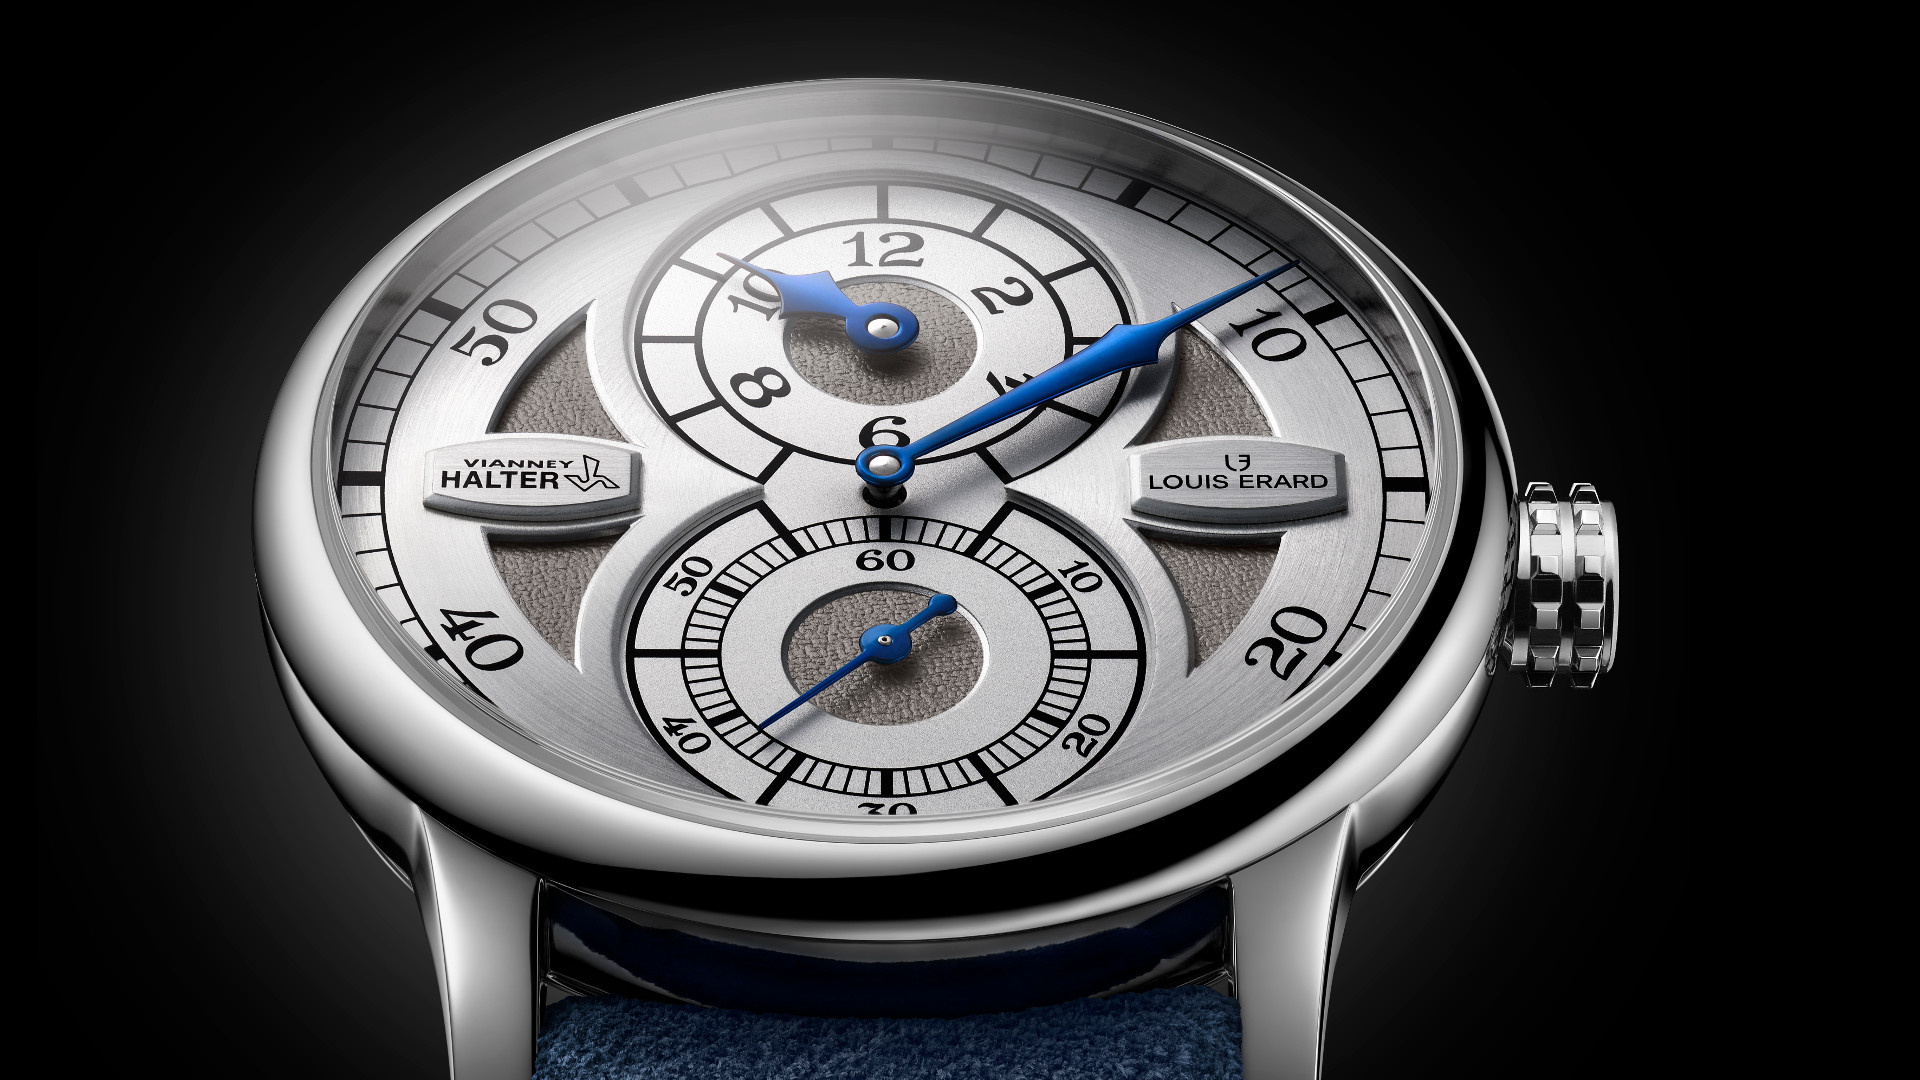 Le Régulateur Louis Erard x Vianney Halter: Independent Watches Made (Relatively) Accessible